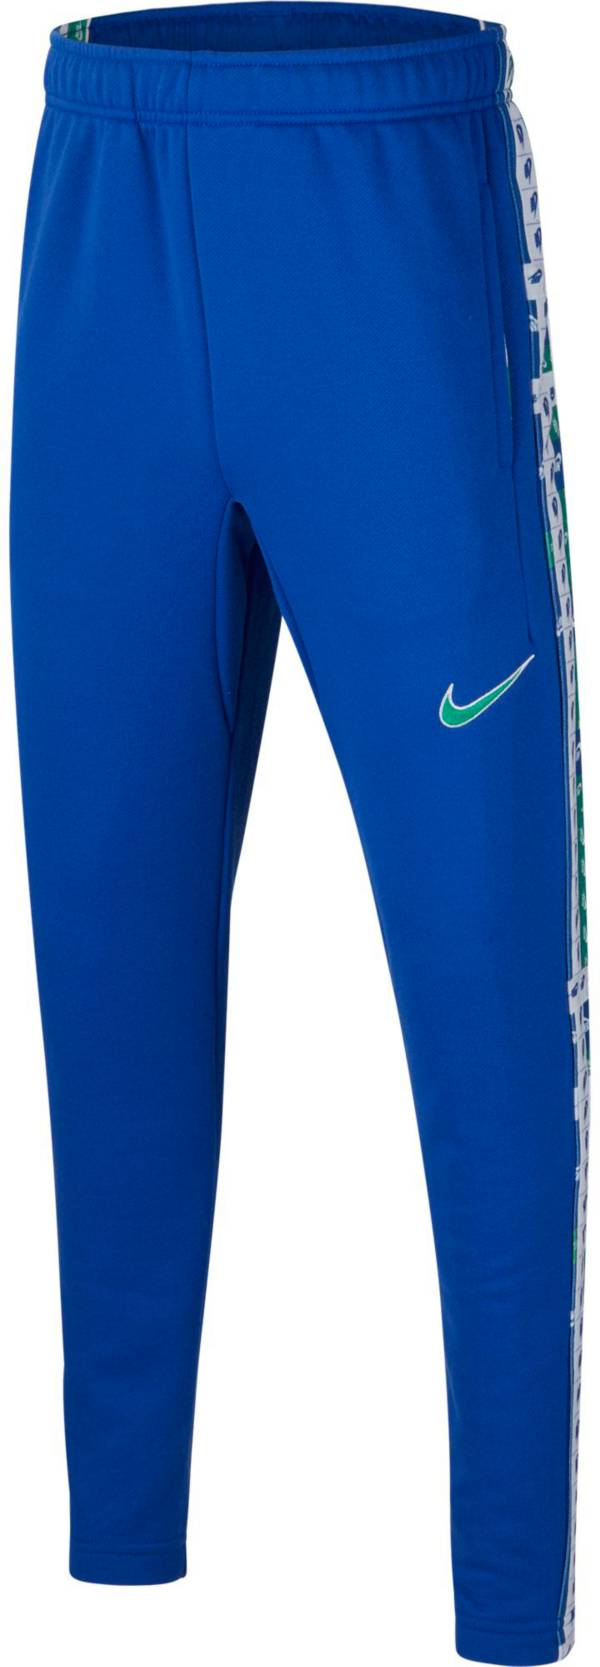 Nike Boys' Dri-FIT Graphic Tapered Training Pants product image